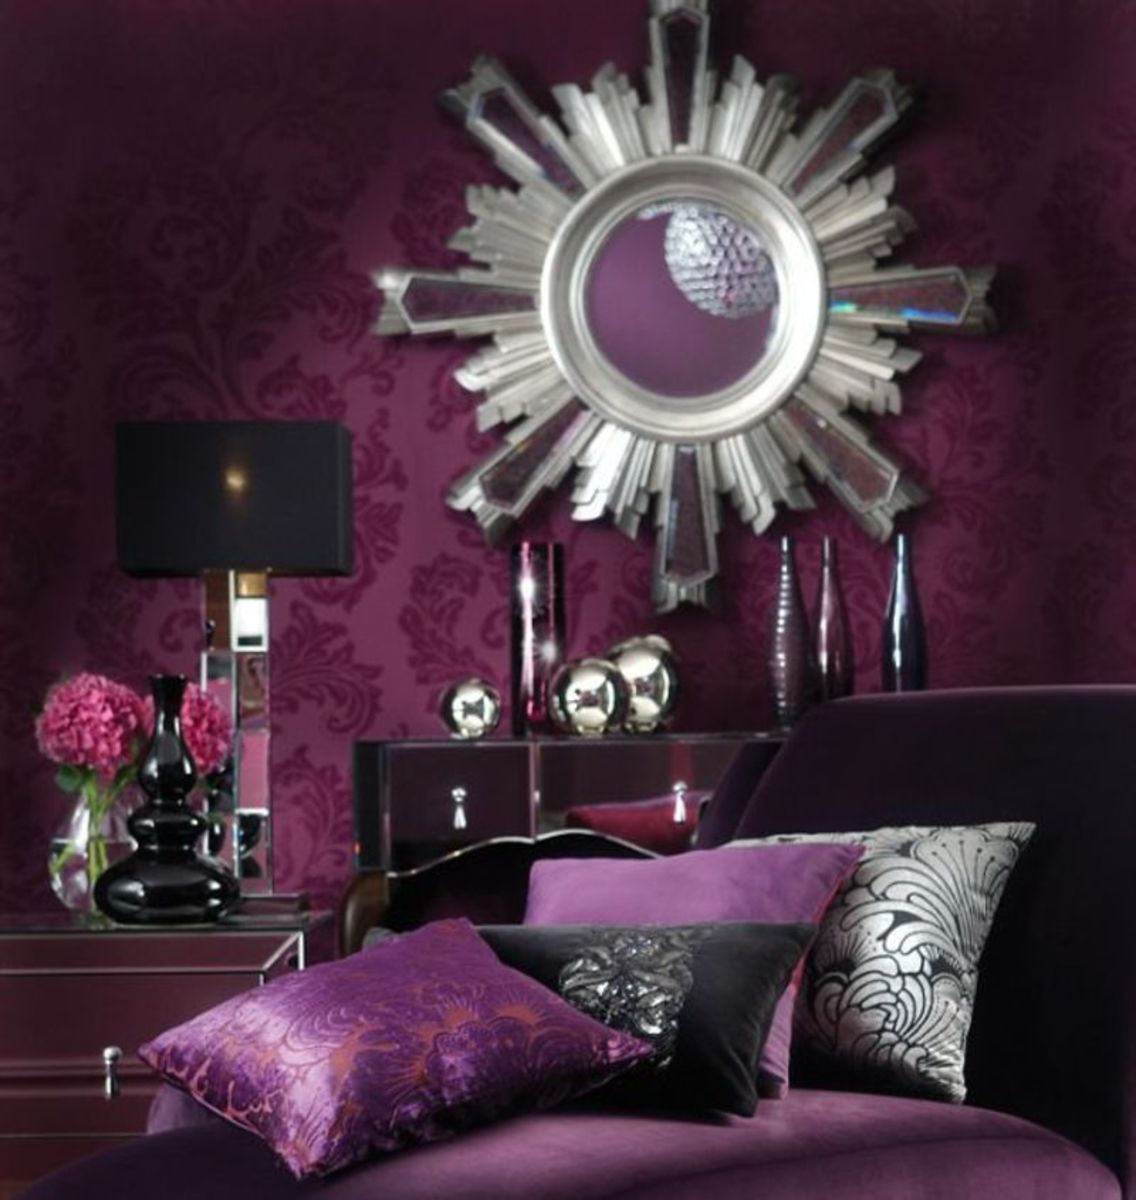 Purple, violet, wine or plum Bedroom Design Décor Ideas